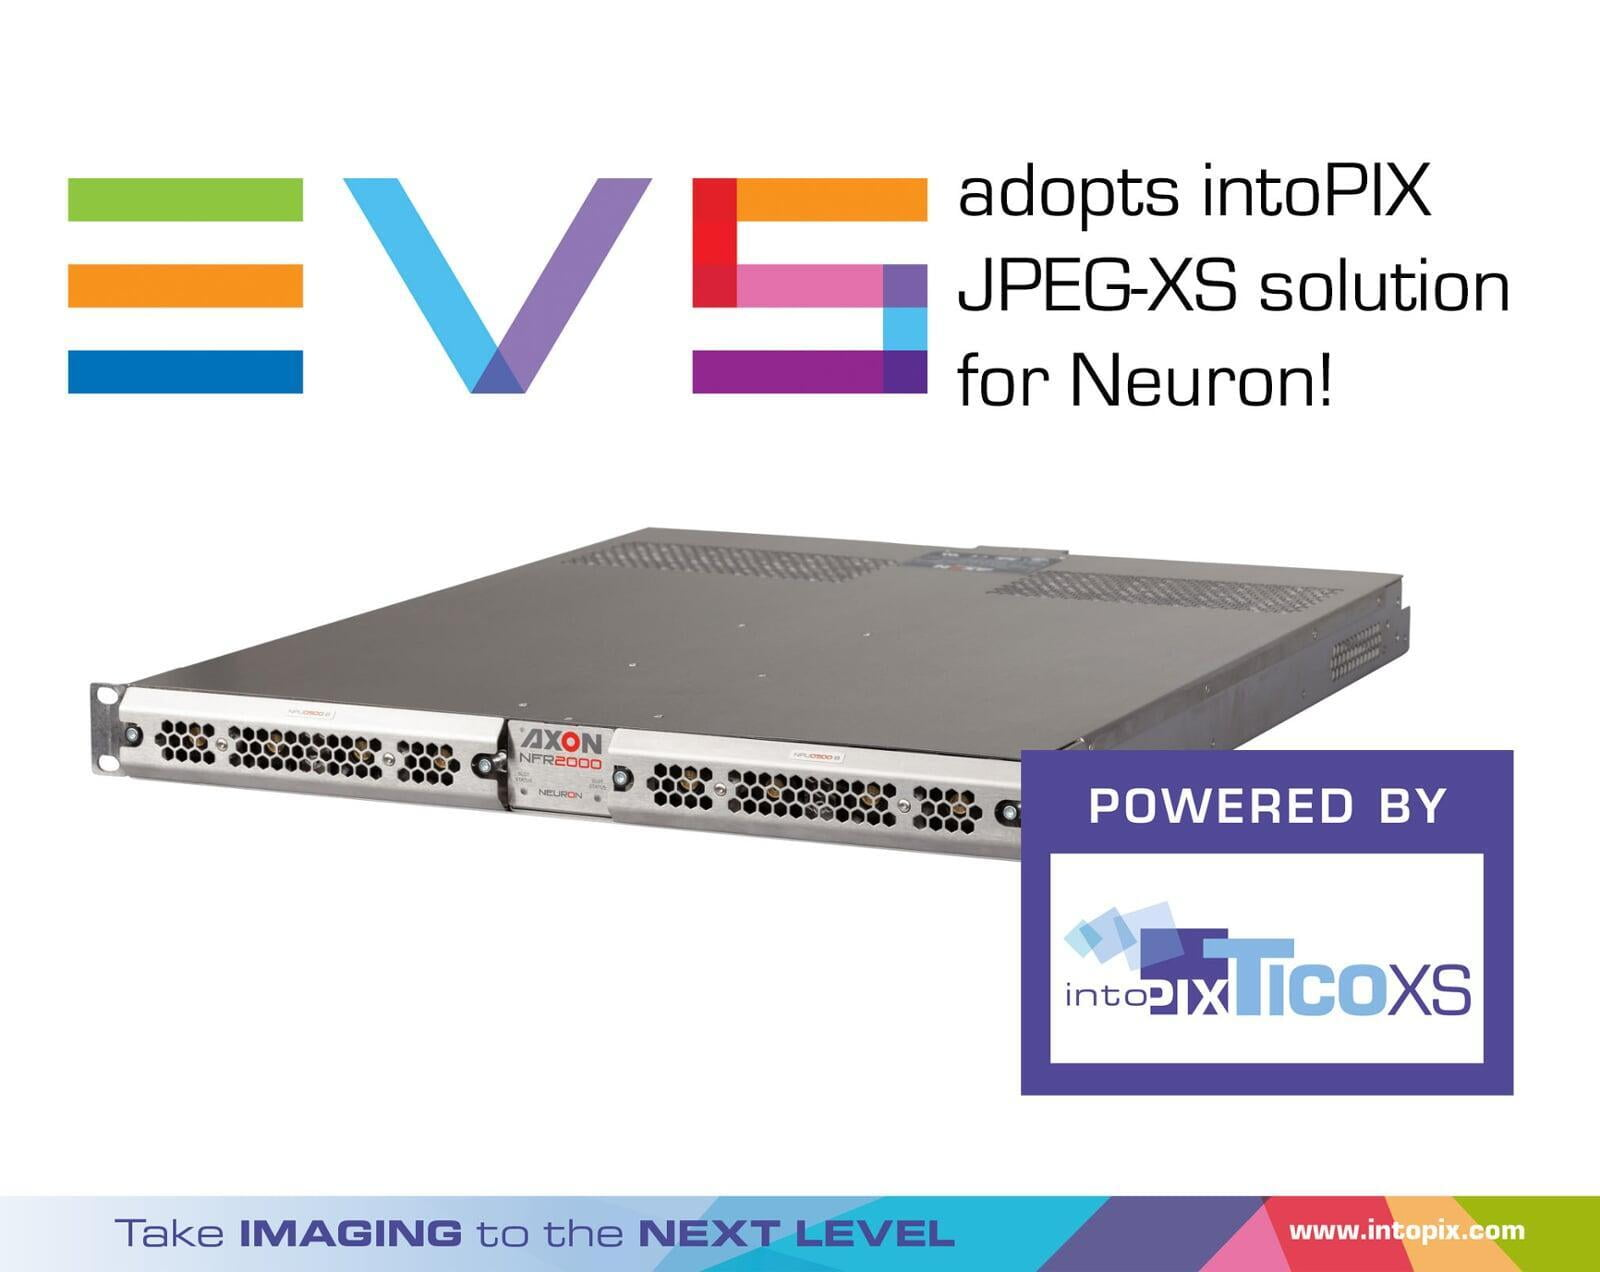 EVS Media Infrastructure adopts intoPIX JPEG-XS solution for Neuron